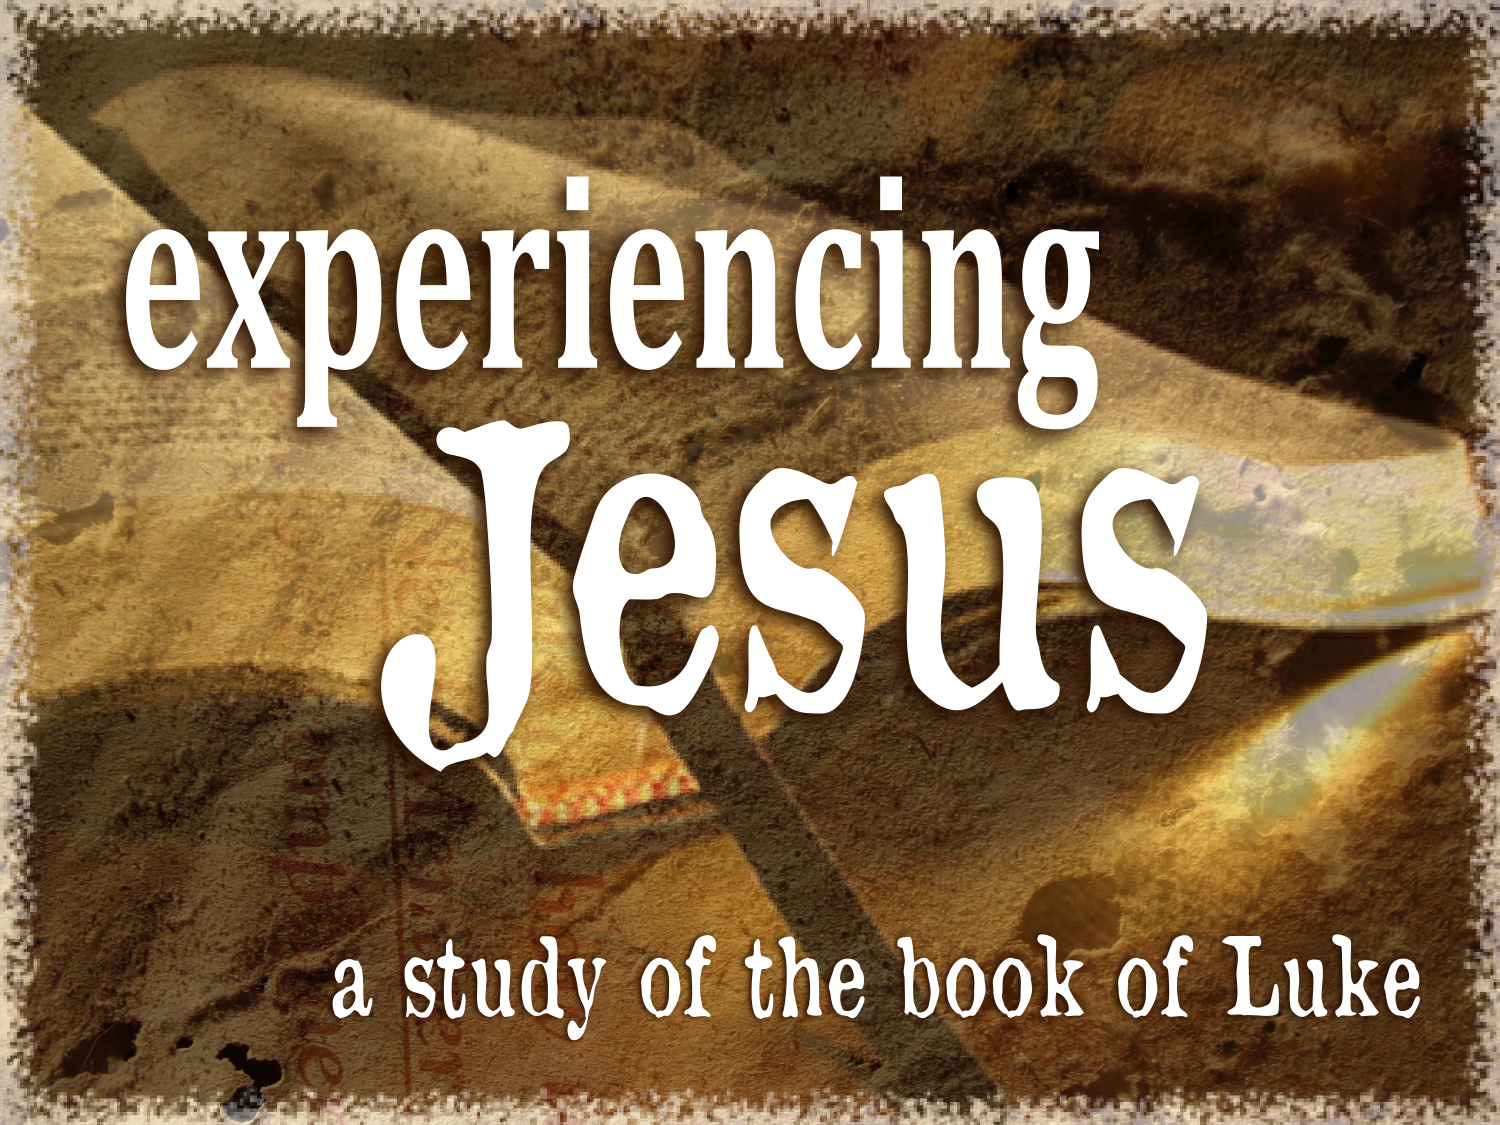 Next series: Experiencing Jesus